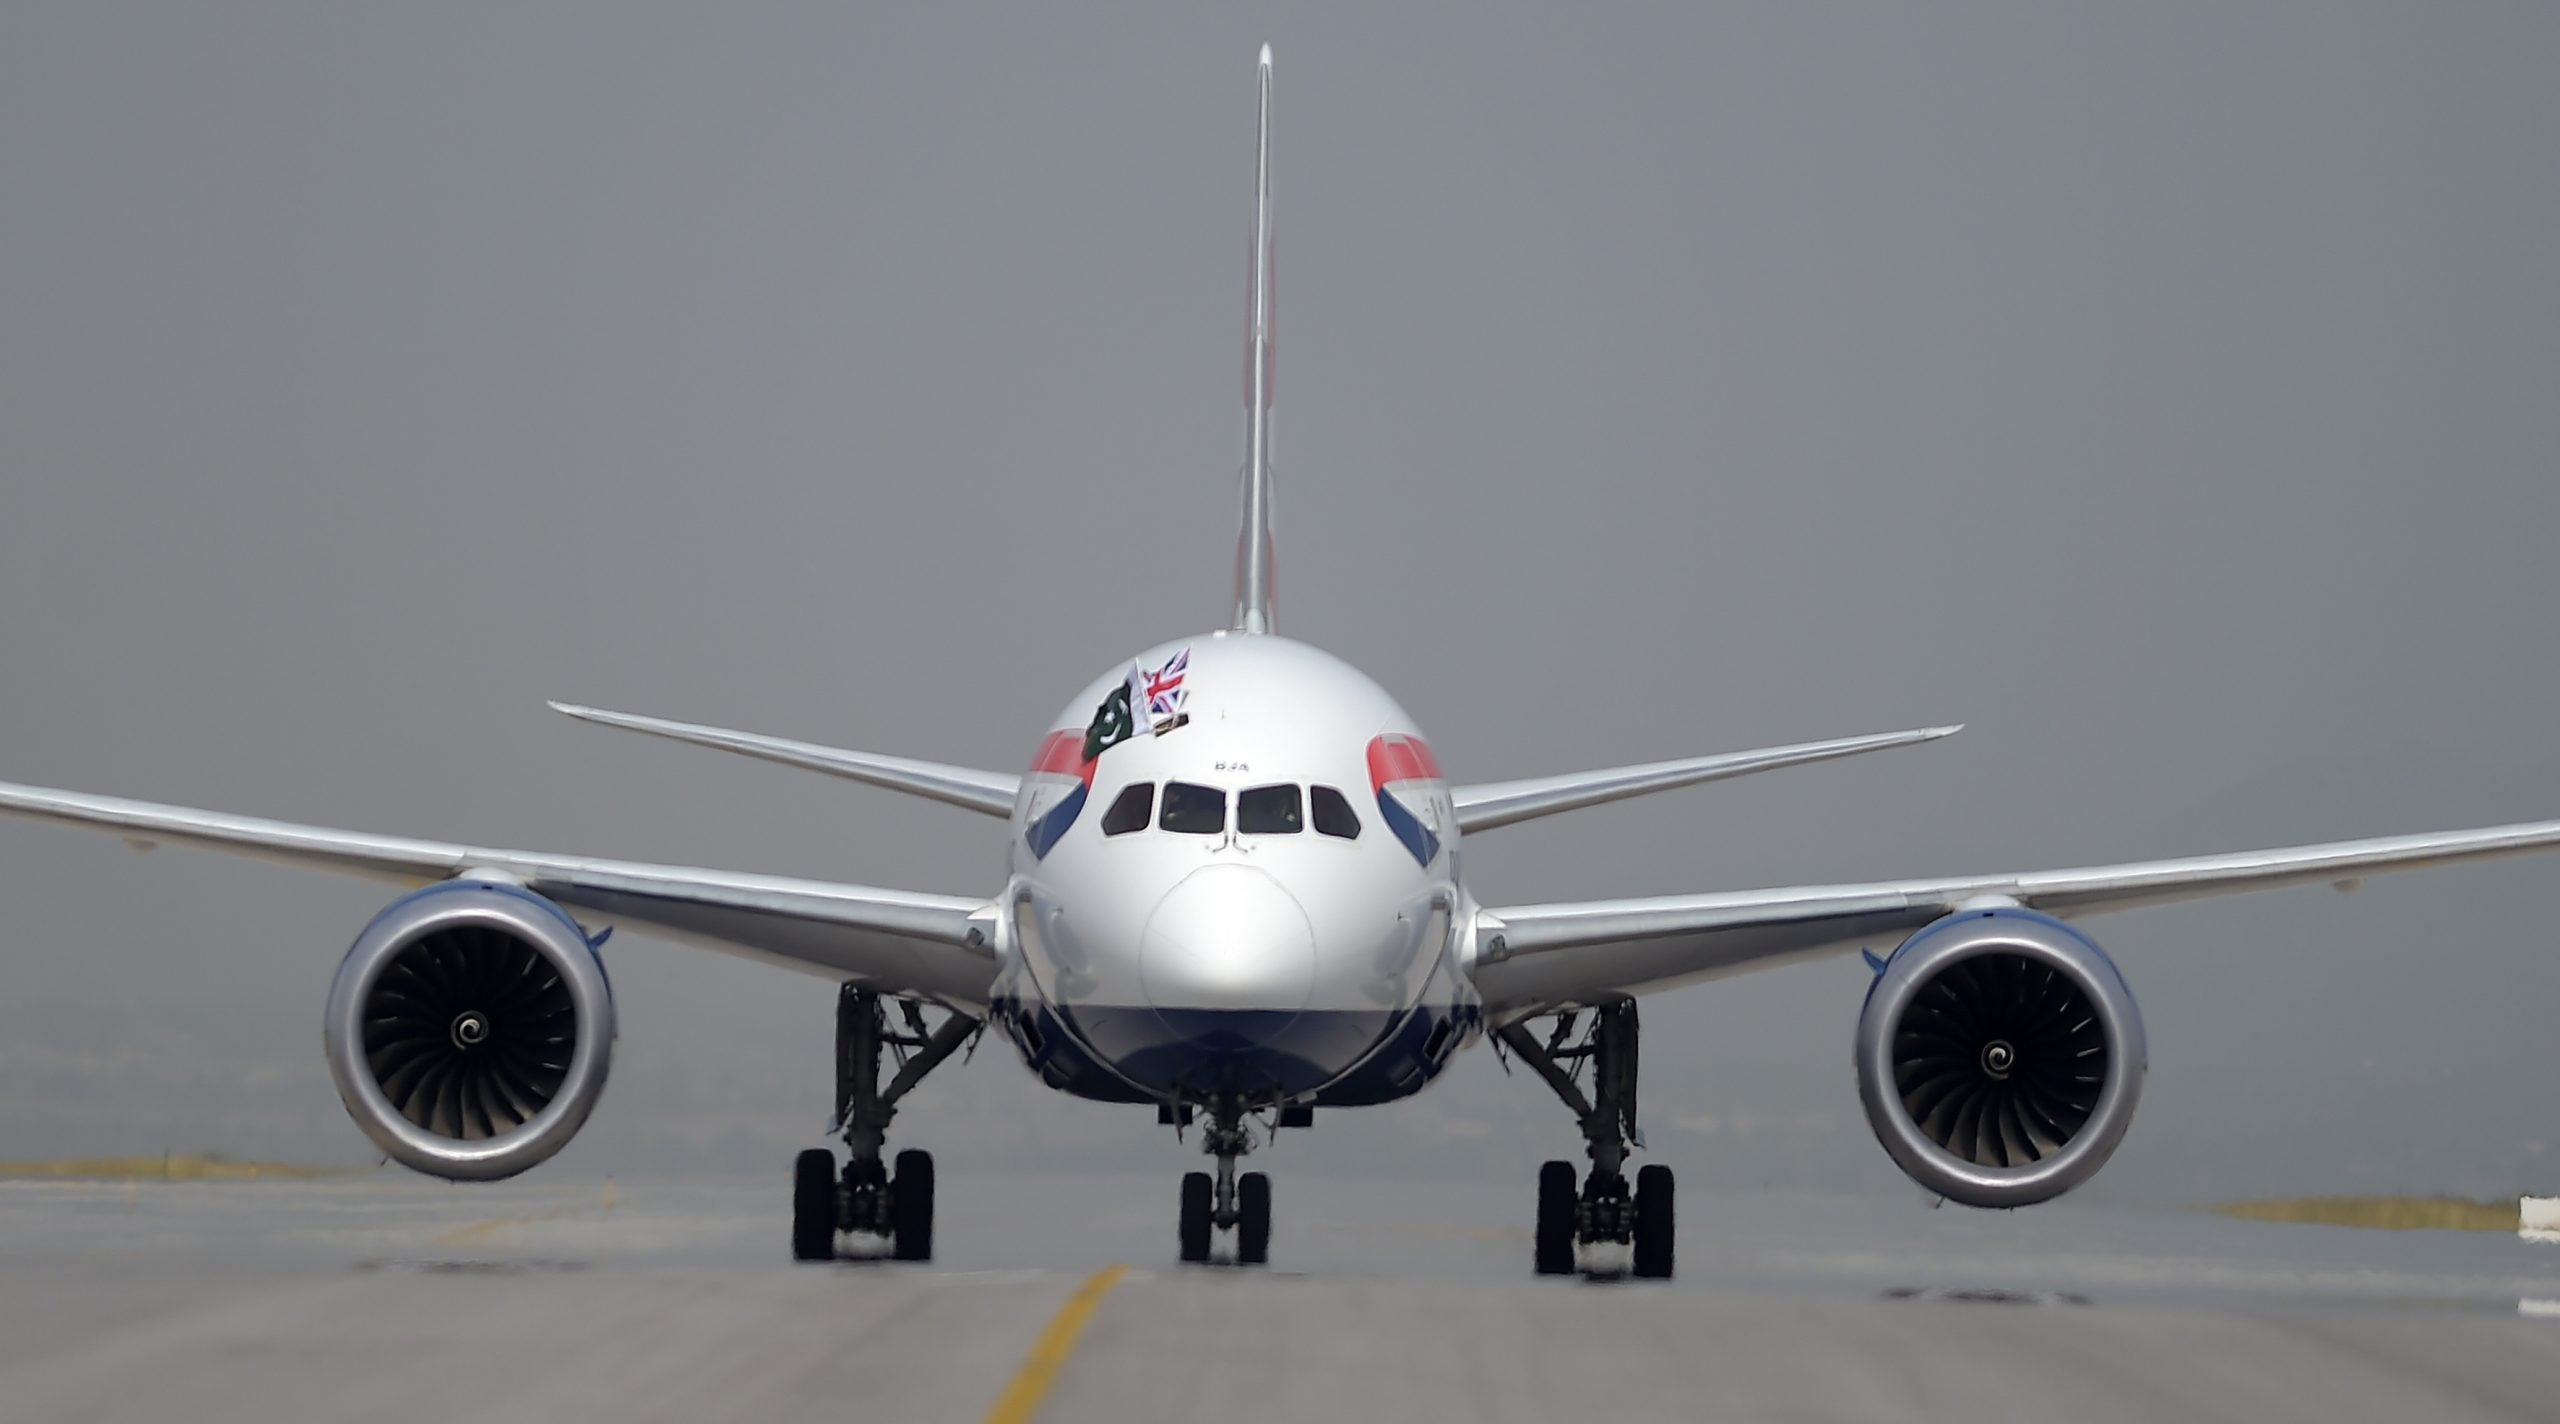 As BA faces a £183m fine for privacy breach, hundreds of businesses suffer similar attacks